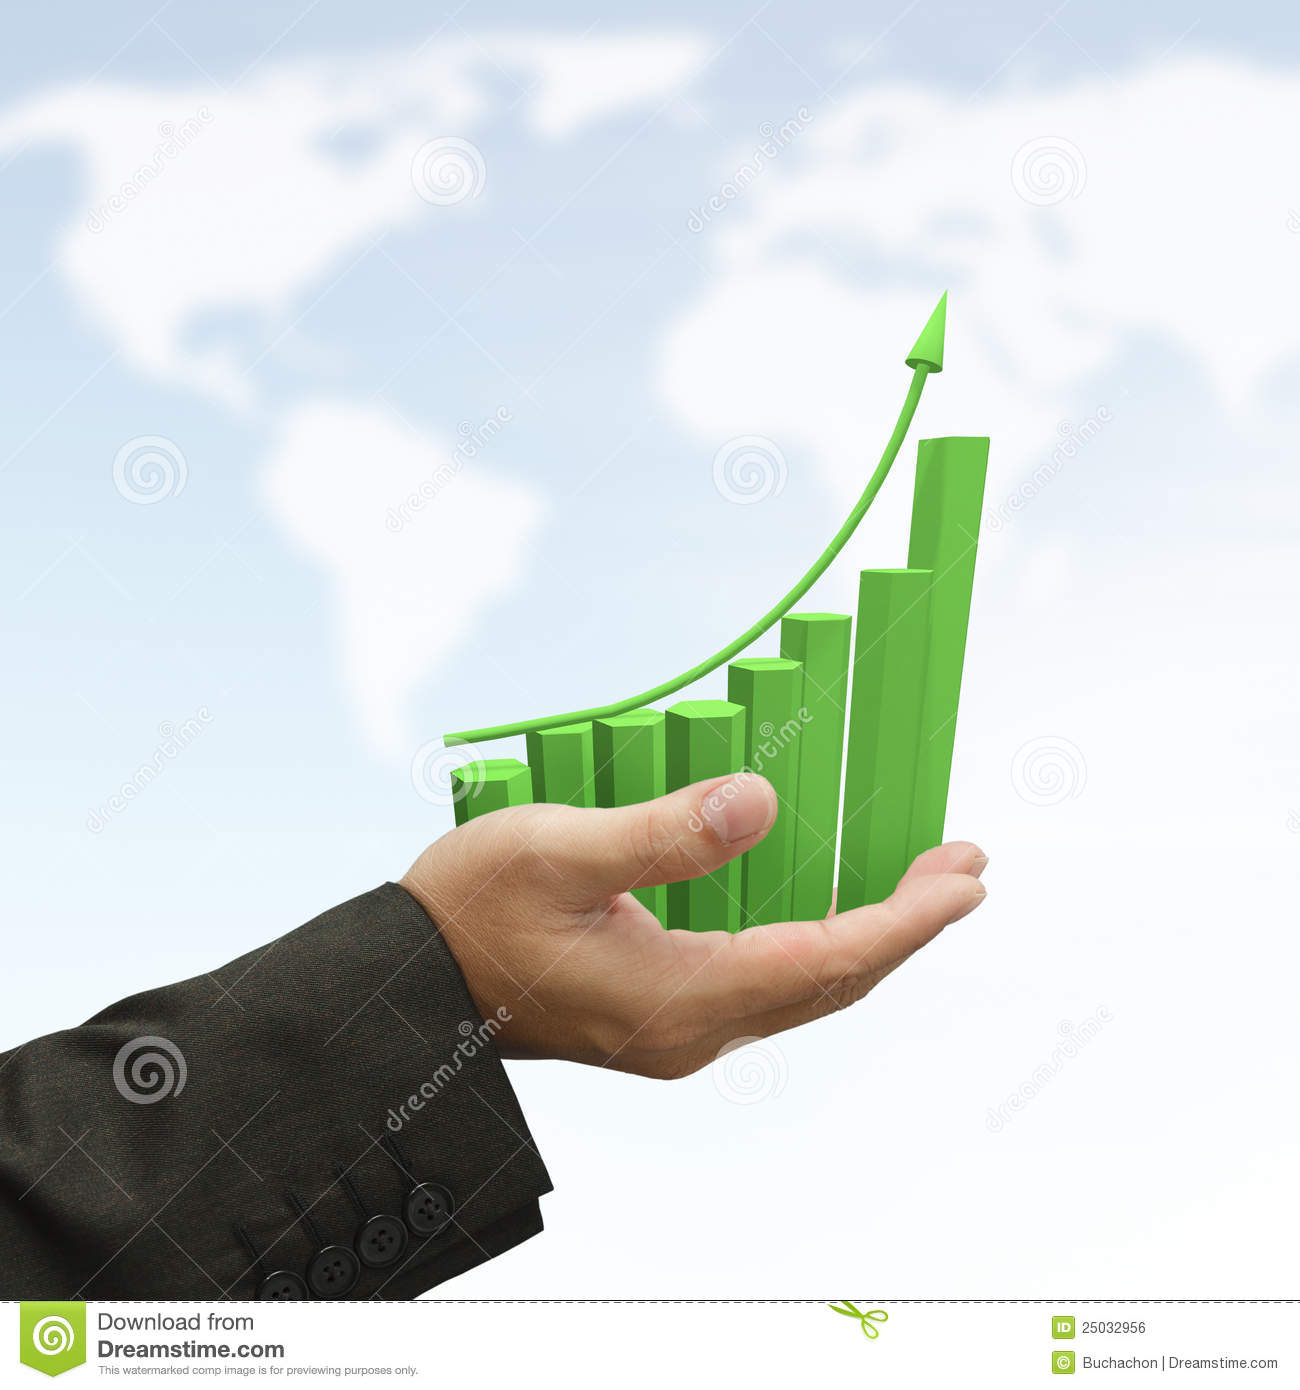 rising green graph